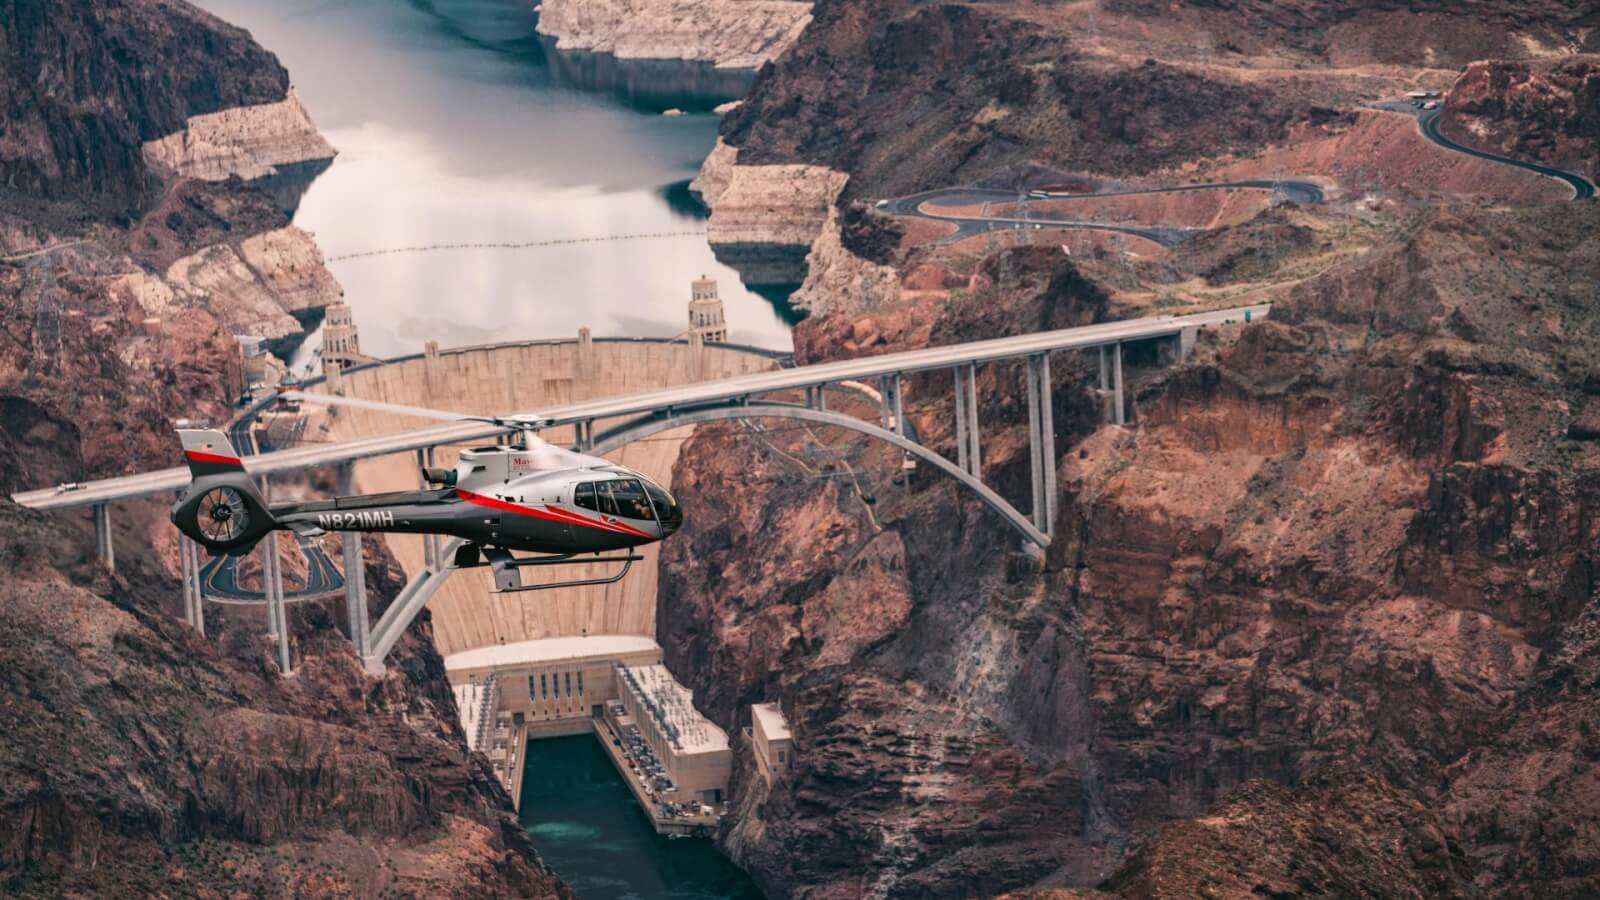 A helicopter soars over the Hoover Dam on its way to the Grand Canyon West.